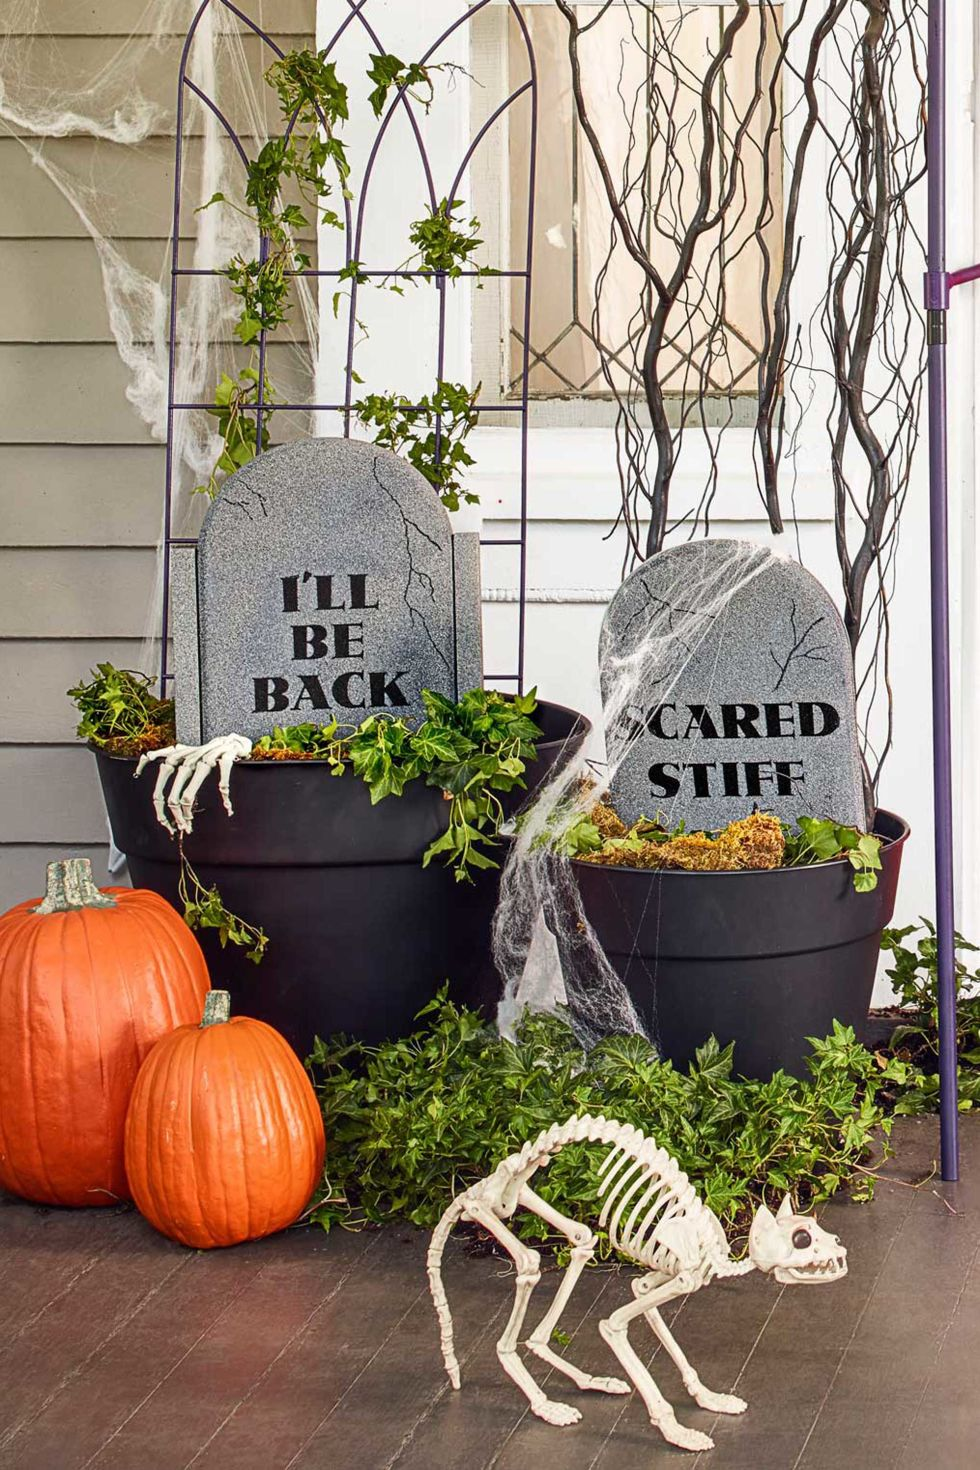 40 easy diy halloween decoration ideas homemade halloween decor projects - Diy Halloween